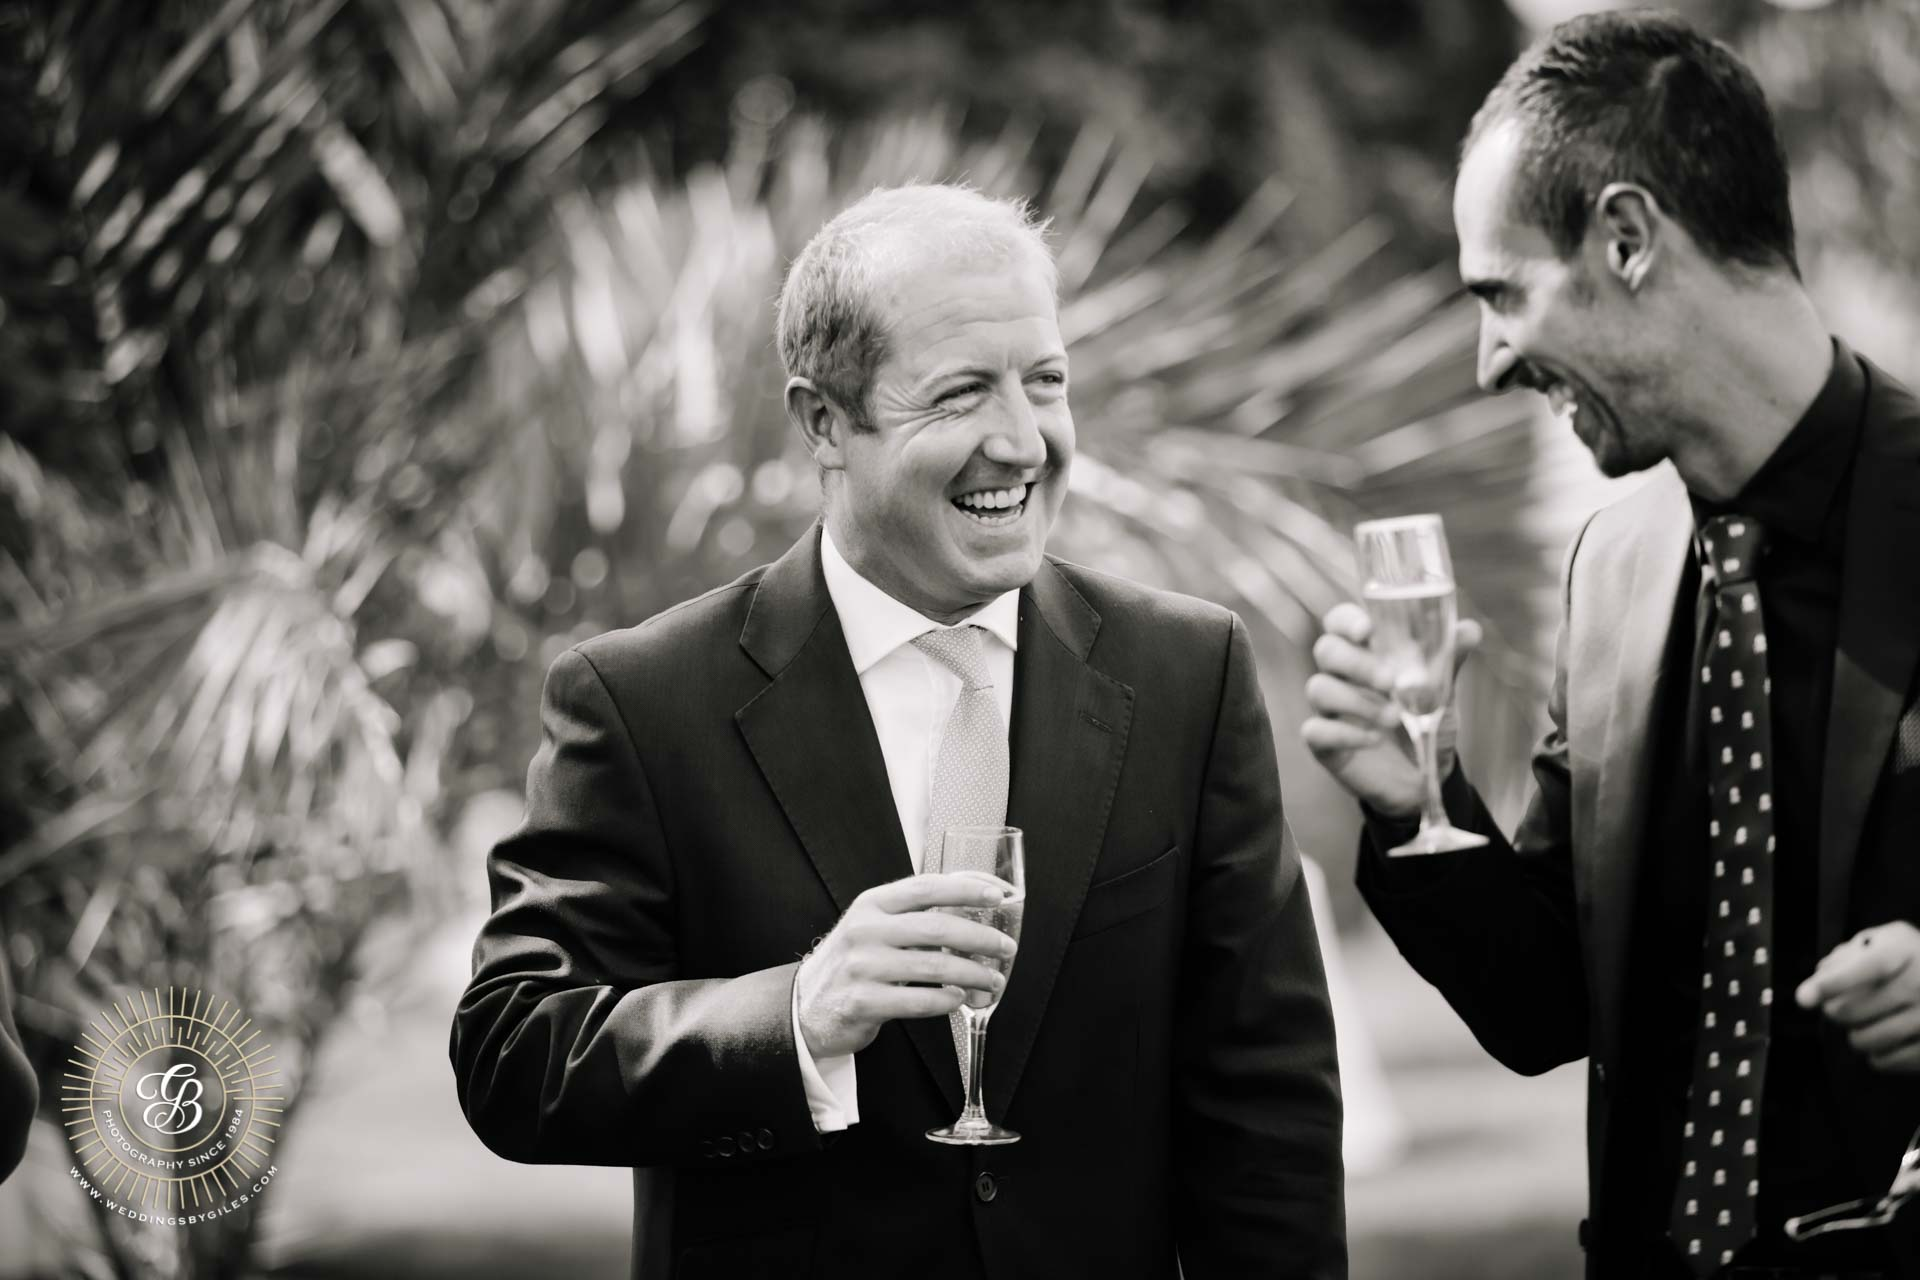 wedding guests drink champagne